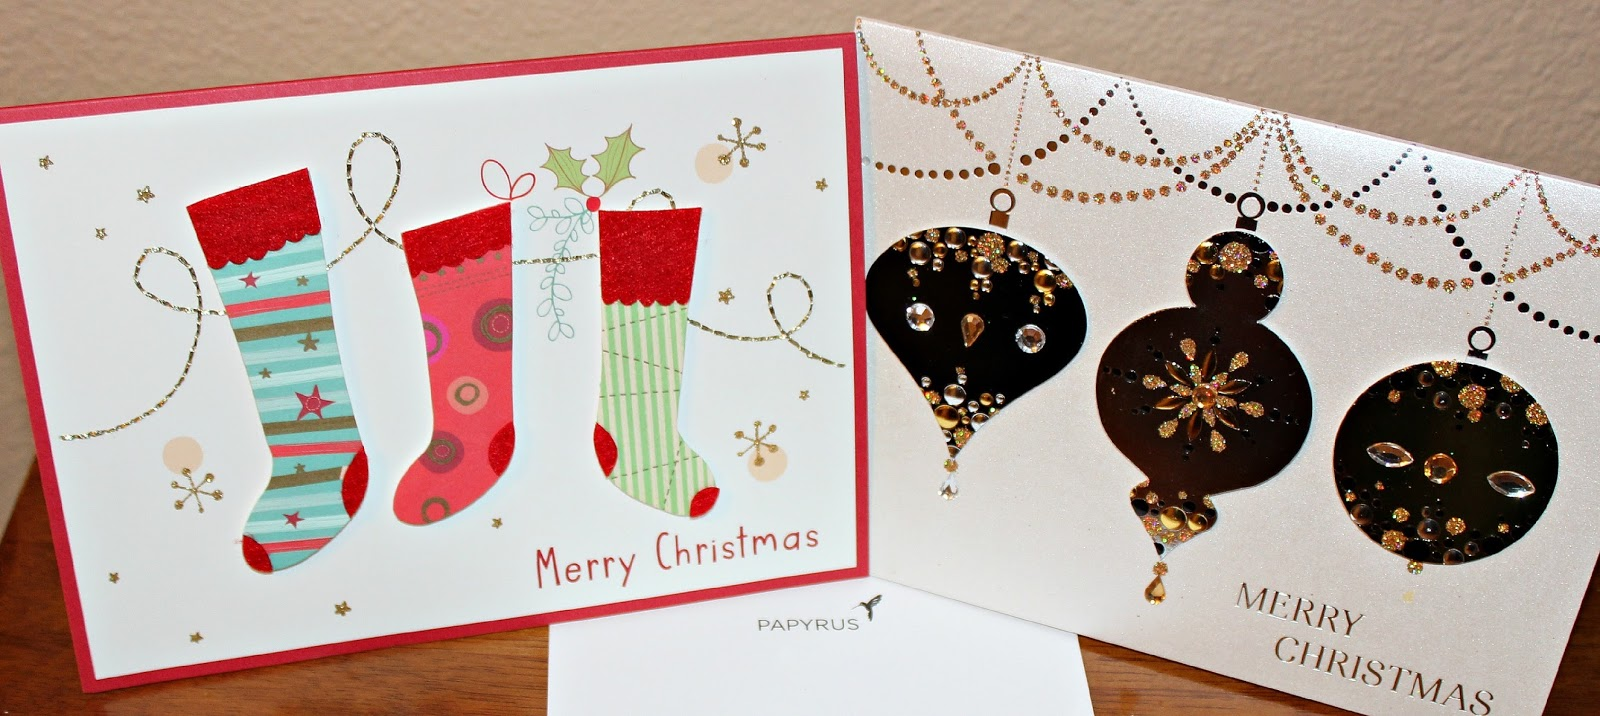 Celebrating Christmas Card Day with PAPYRUS Cards